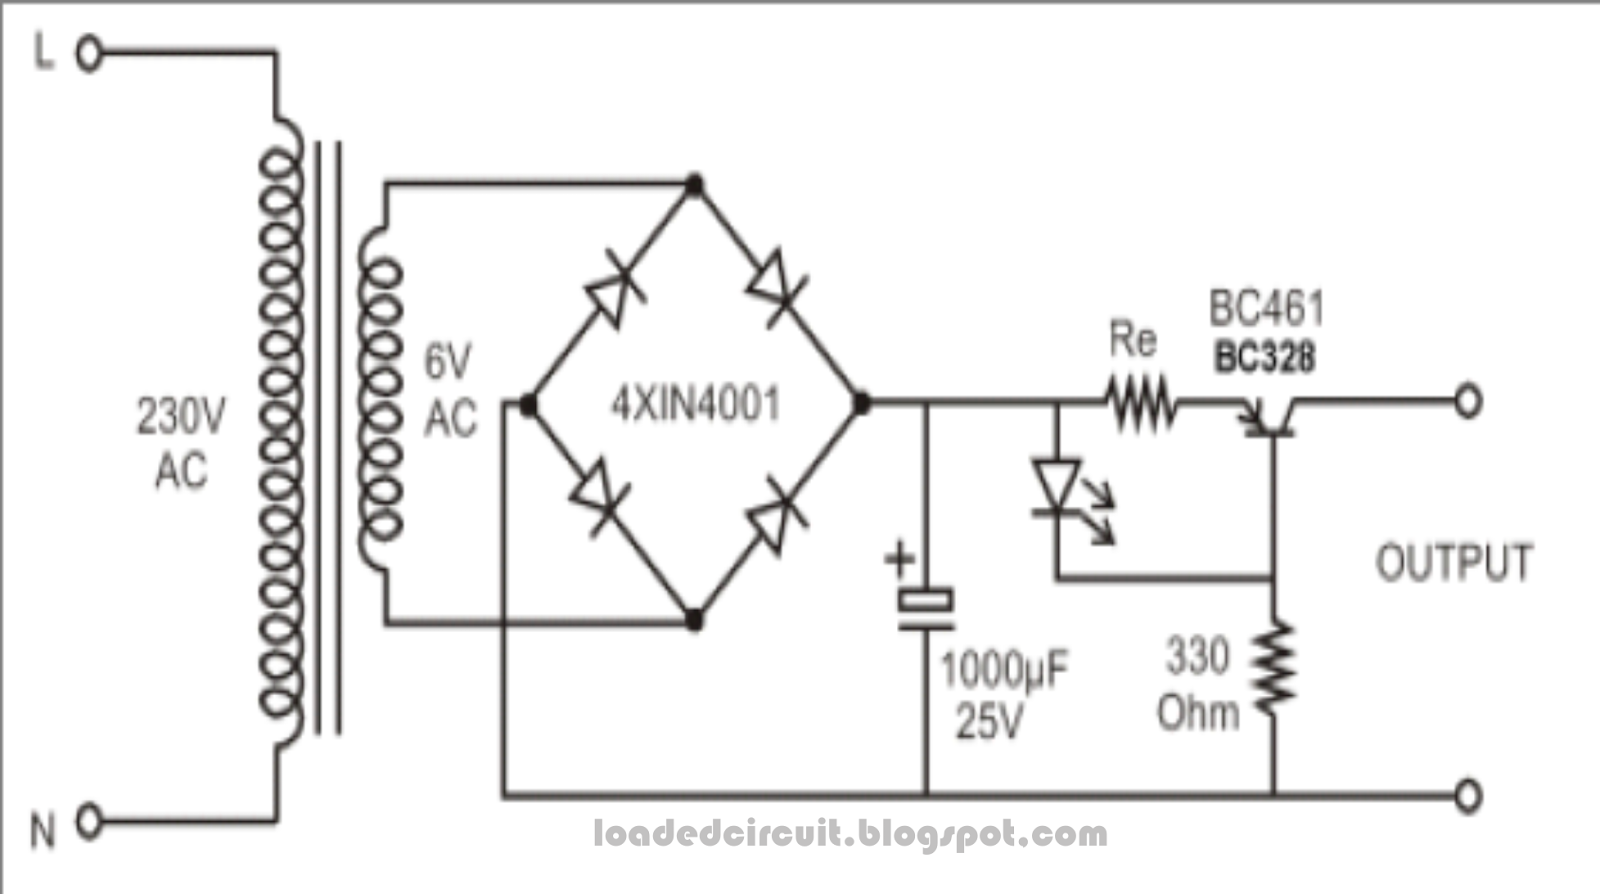 LoadedCircuit.Com: CONSTANT CURRENT SOURCE